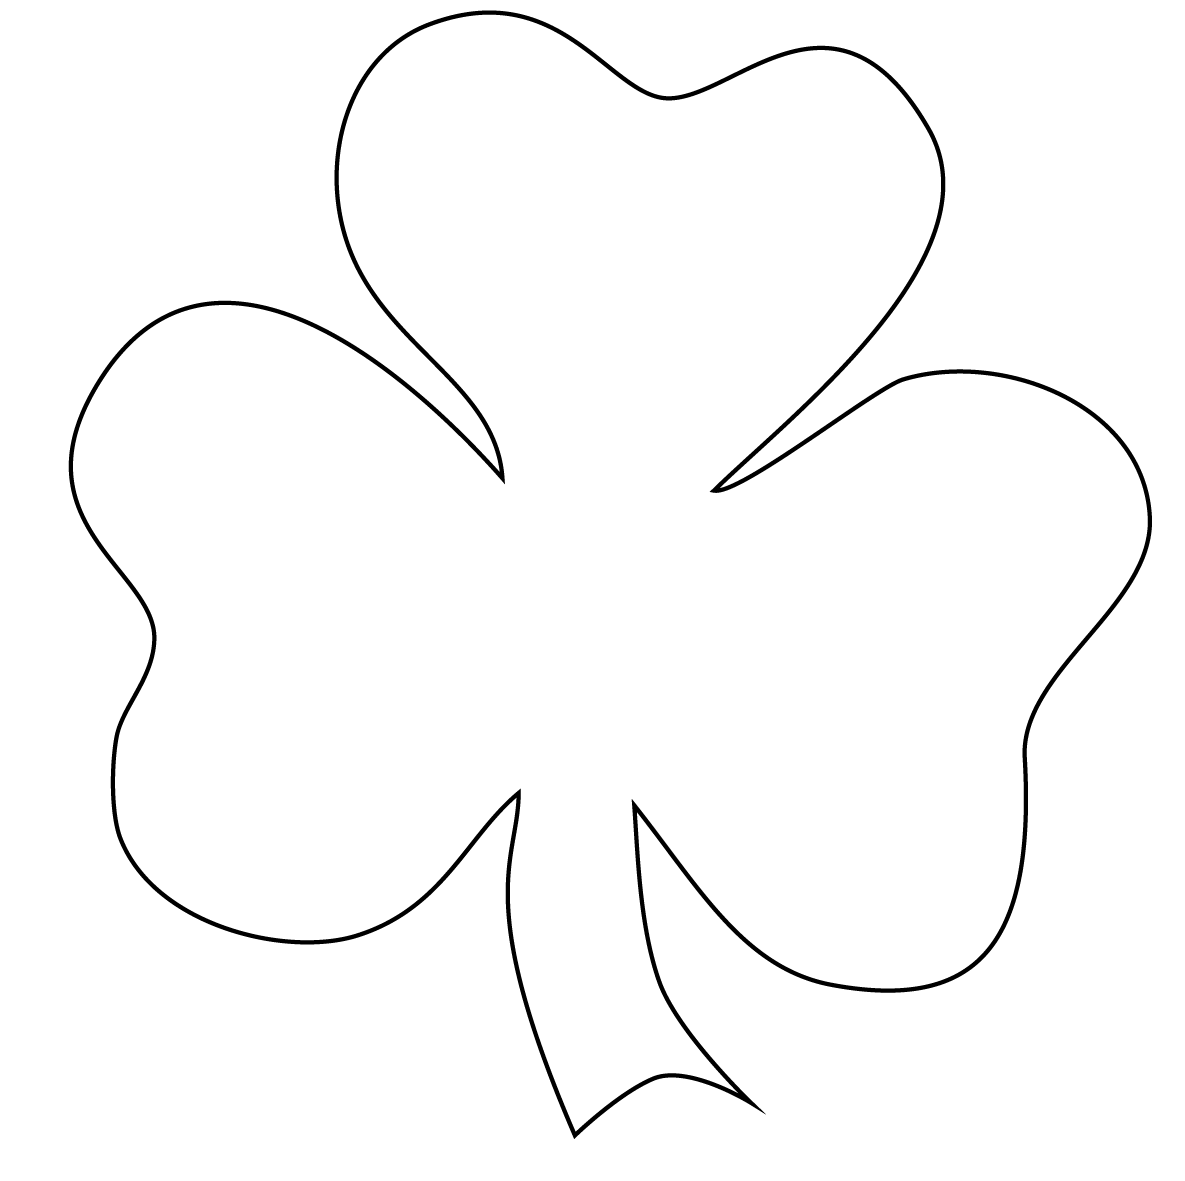 photo relating to Shamrock Template Printable Free referred to as 12 Cost-free Printable Templates Clroom/Training Recommendations